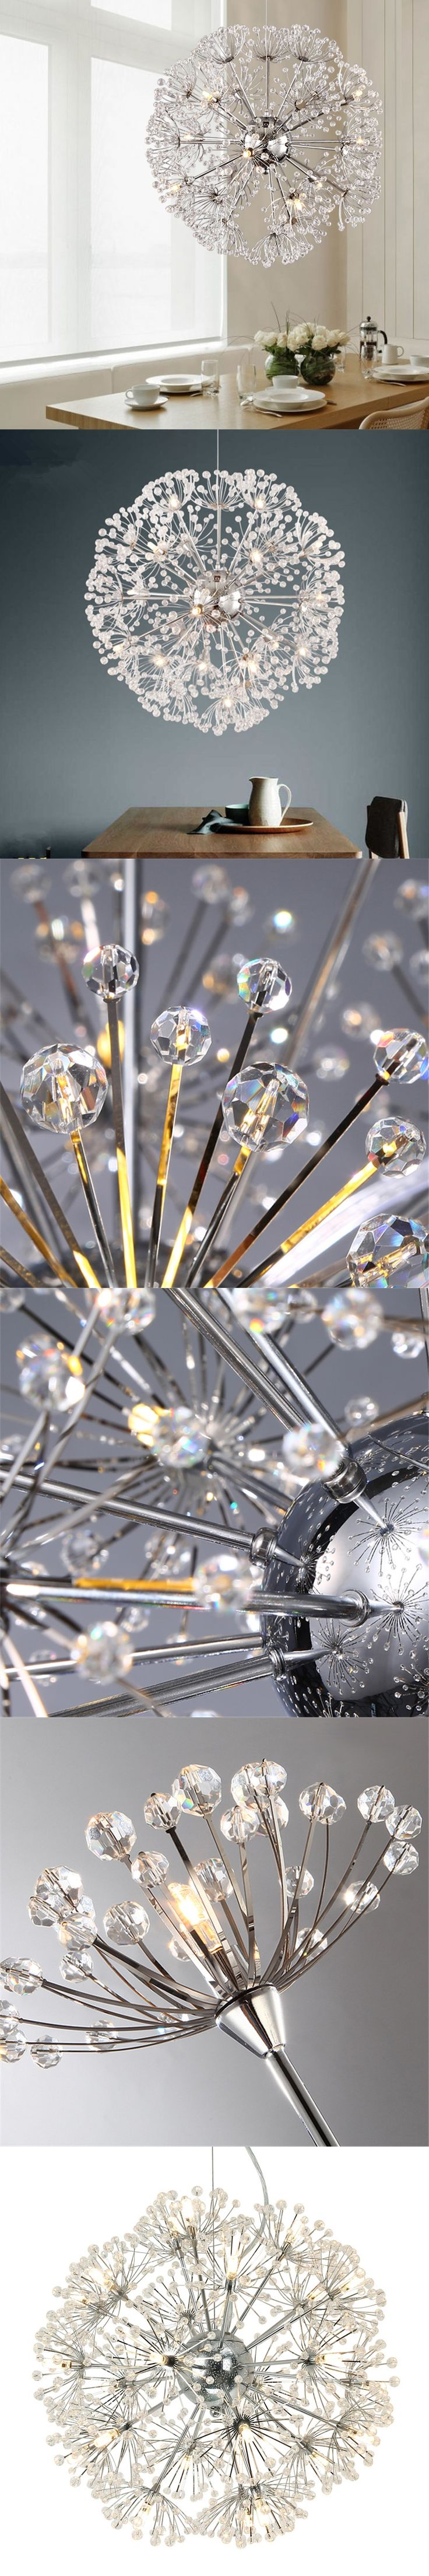 Best 25 modern crystal chandeliers ideas on pinterest crystal modern crystal chandeliers lighting dandelion pendant lamp for kitchen living room lustre light fixture hanging lamp arubaitofo Images